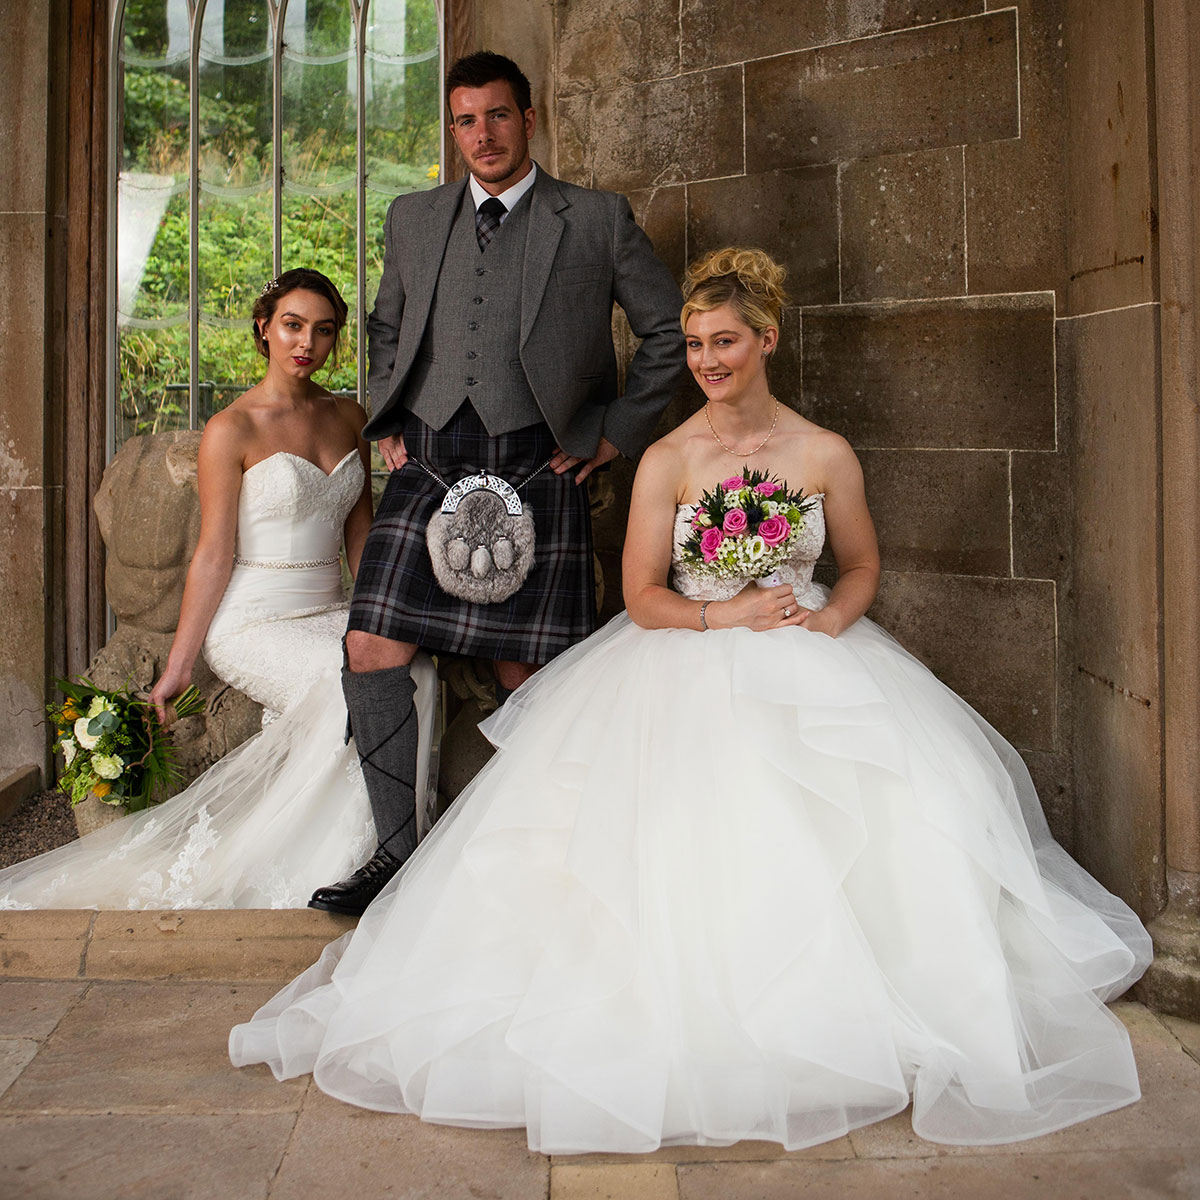 bridal-models-and-groom-wearing-grey-kilt-outfit